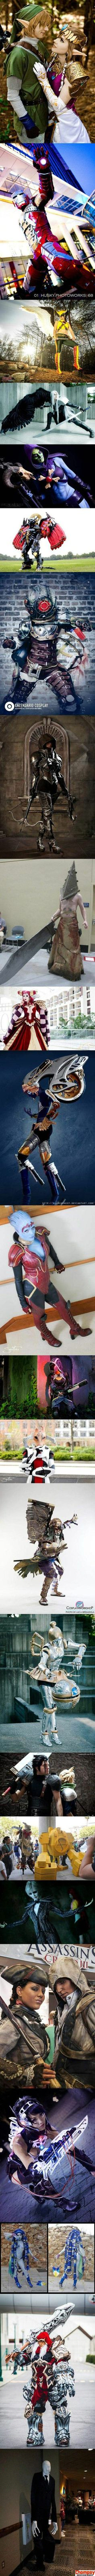 Best cosplays of the year